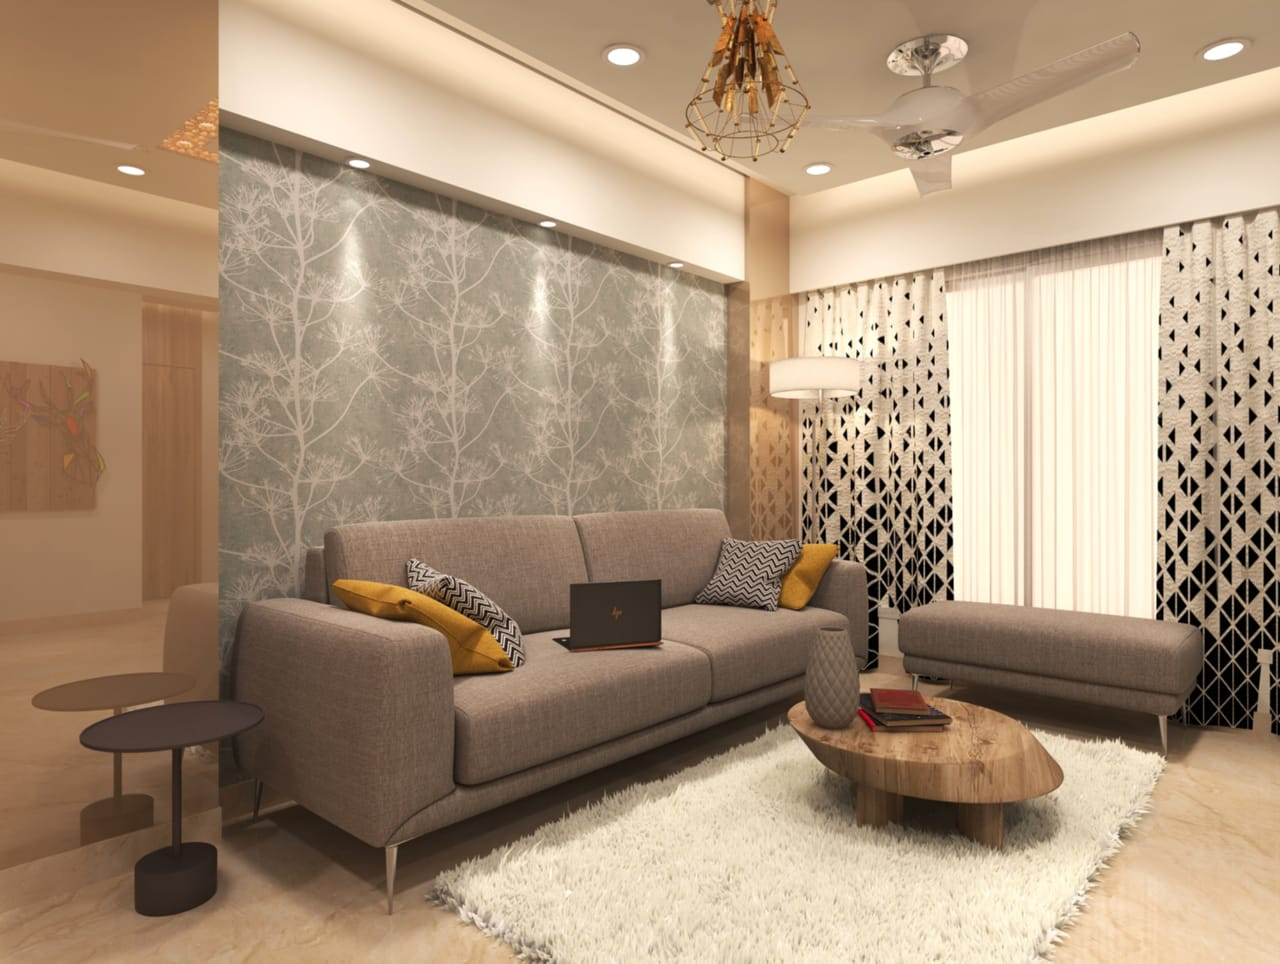 Low Cost Interior Design Ideas